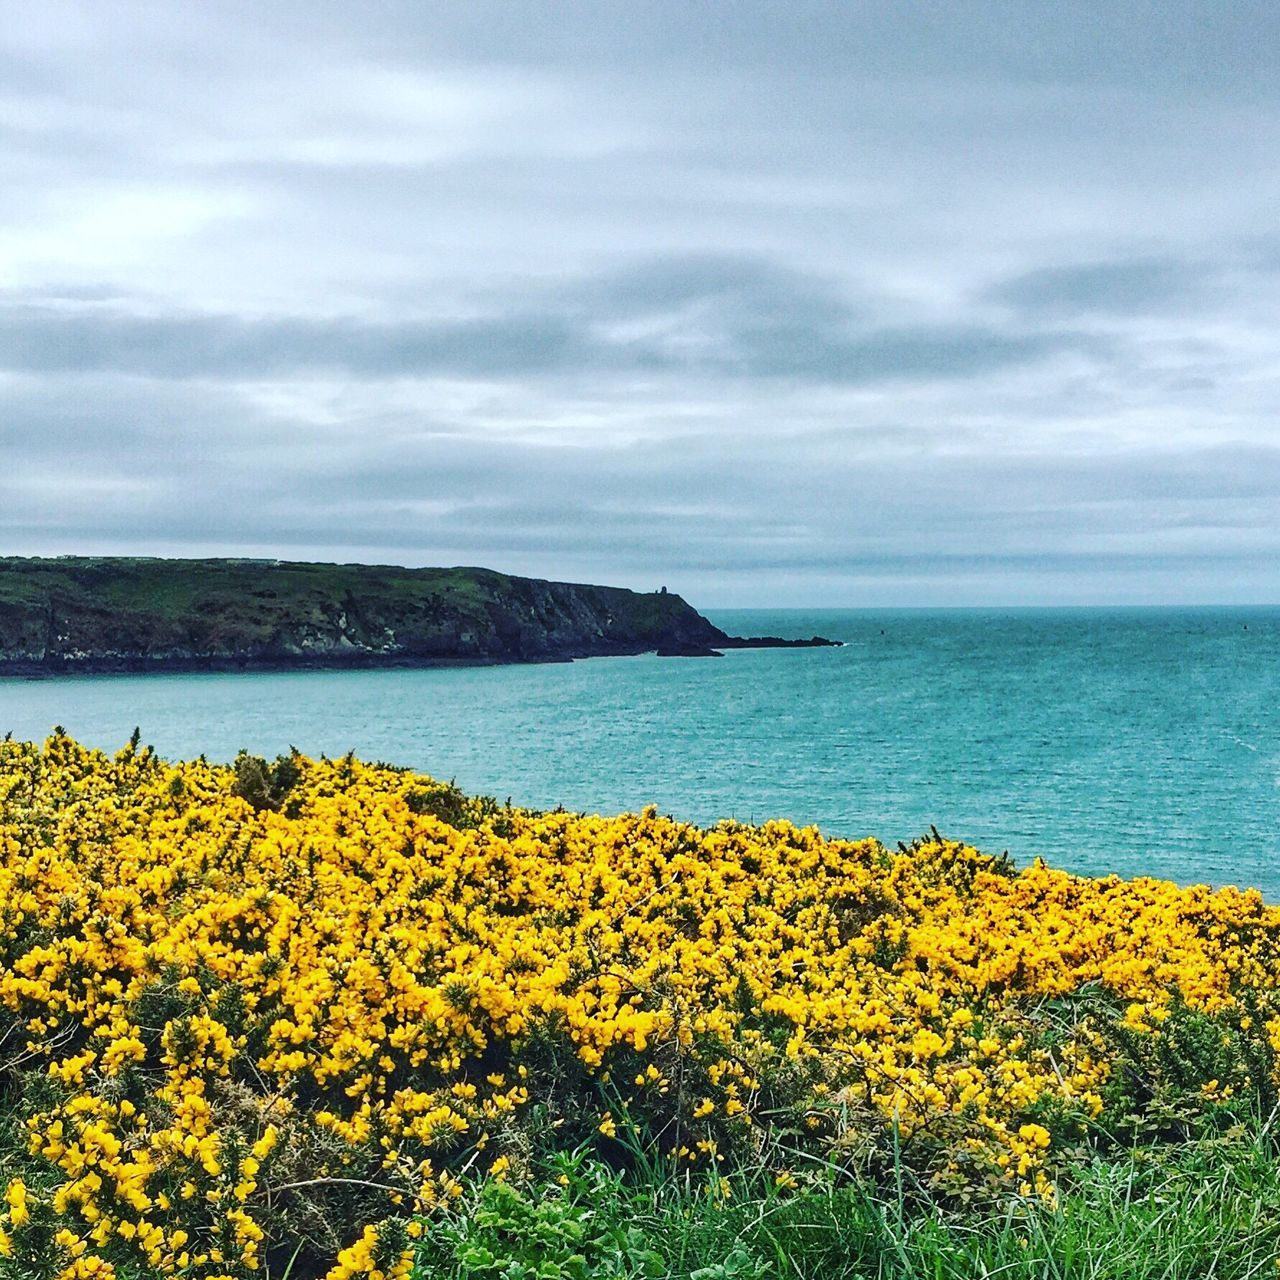 Colours of nature - yellow gorse and blue green sea on the coast of Pembrokeshire Nature Sky Flower Tranquil Scene Cloud - Sky Yellow Outdoors Idyllic No People Landscape Pembrokeshire Pembrokeshire Coast Coastline Gorse The Great Outdoors - 2017 EyeEm Awards